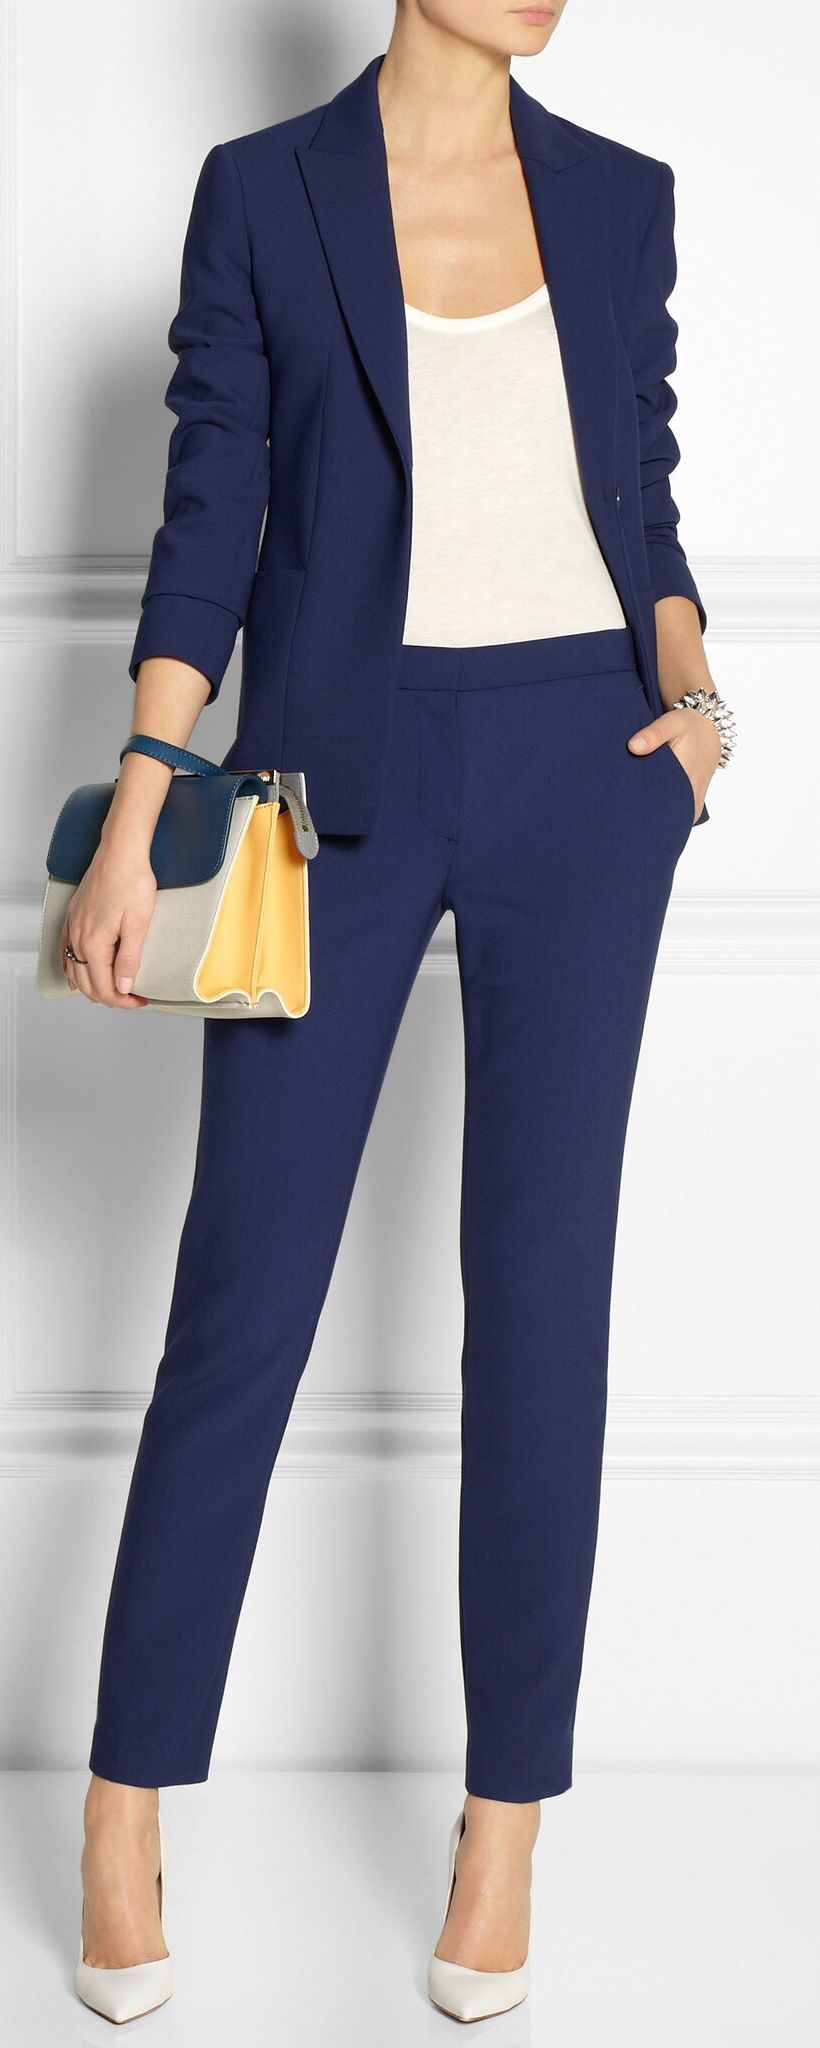 Back To Search Resultswomen's Clothing Pant Suits Royal Blue Women Pant Suit Formal Ladies Business Suits Office Work Wear Female Suit For Weddings Female Suit Custom Made To Win A High Admiration And Is Widely Trusted At Home And Abroad.